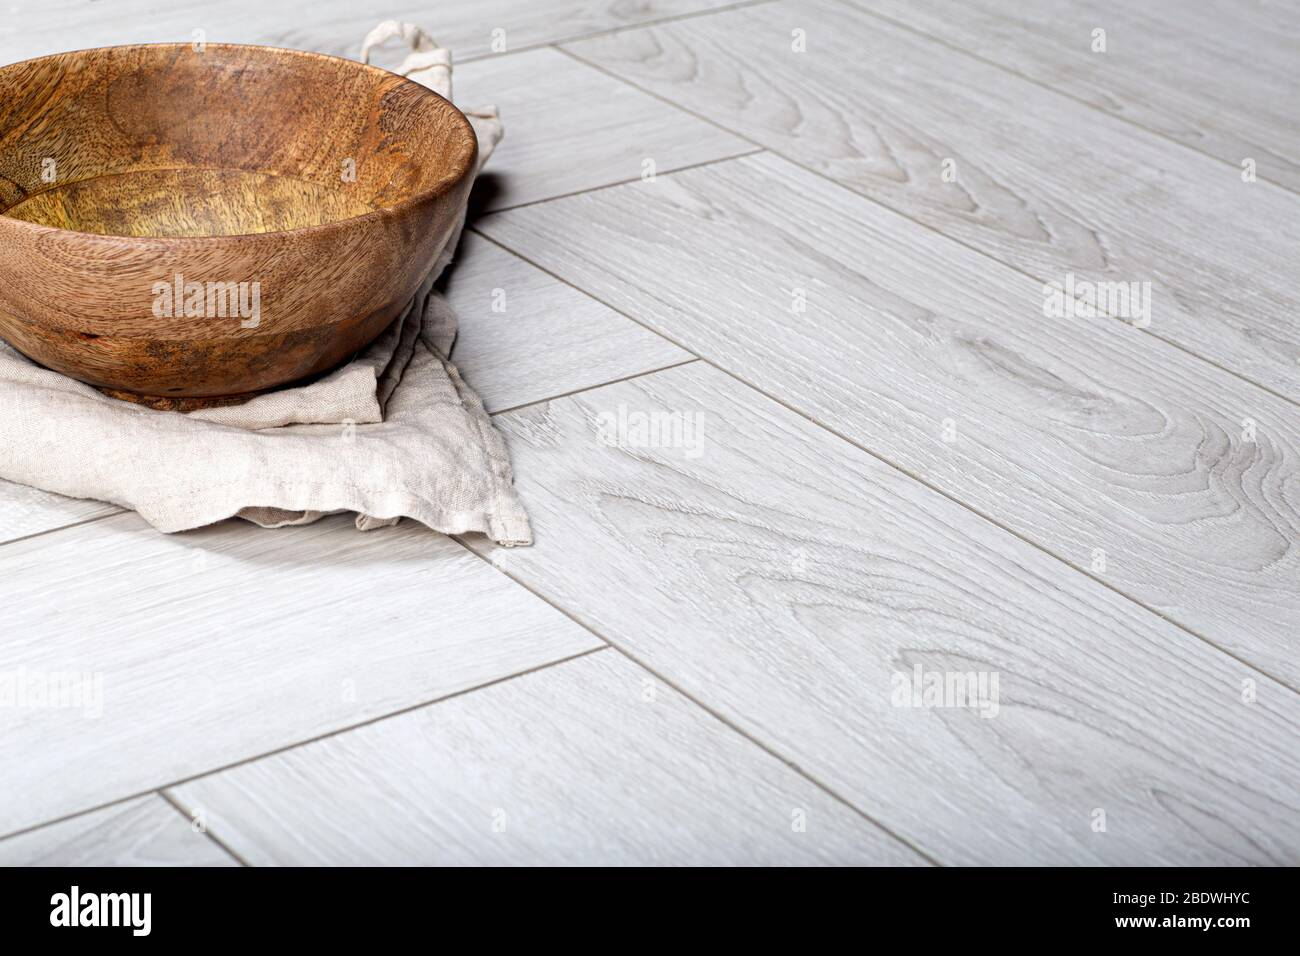 Laminate Background Wooden Laminate And Parquet Boards For The Floor In Interior Design Texture And Pattern Of Natural Wood Stock Photo Alamy